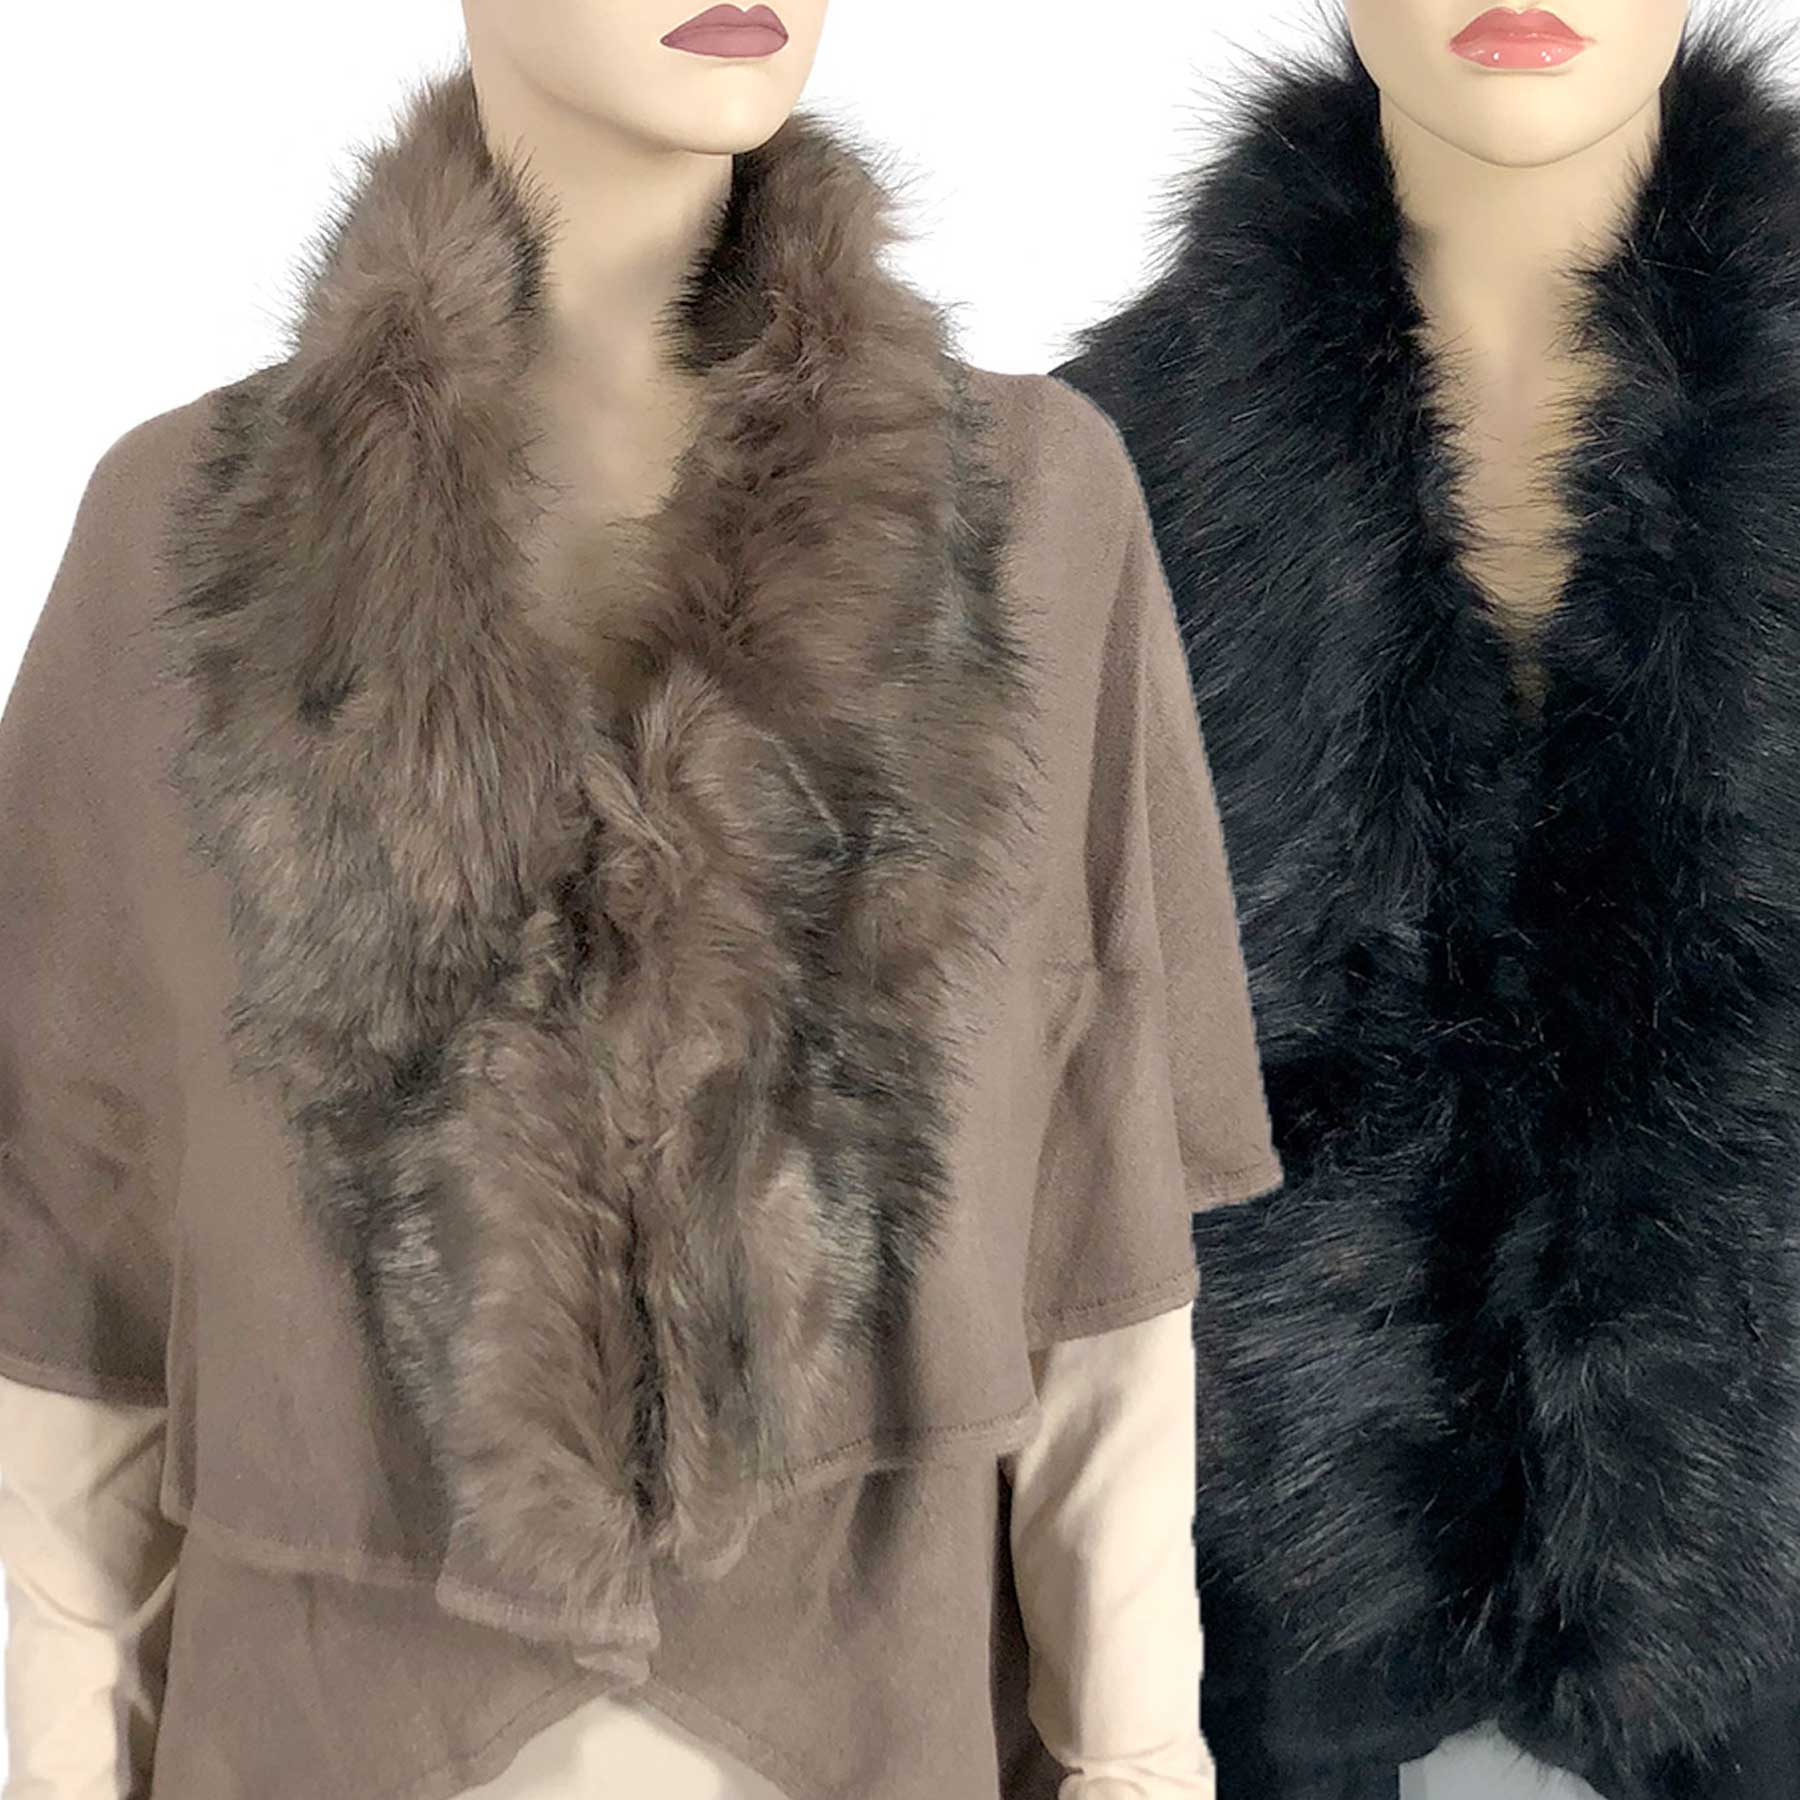 Cape Vests - Solid w/ Faux Fox Fur 93B9